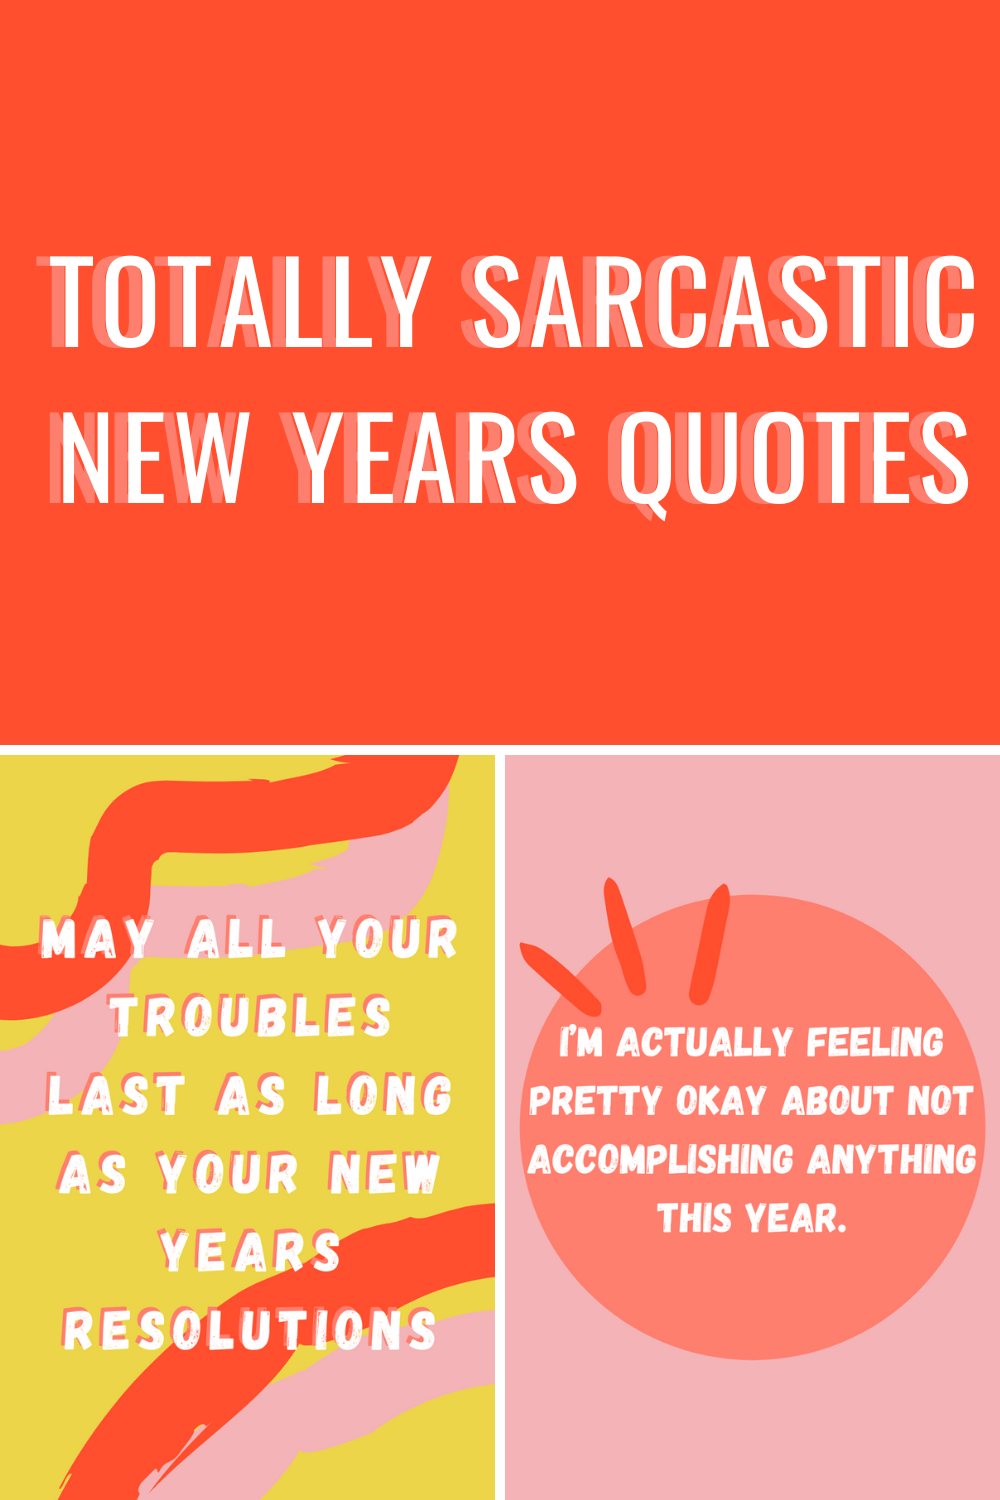 Sarcastic New Years Quotes